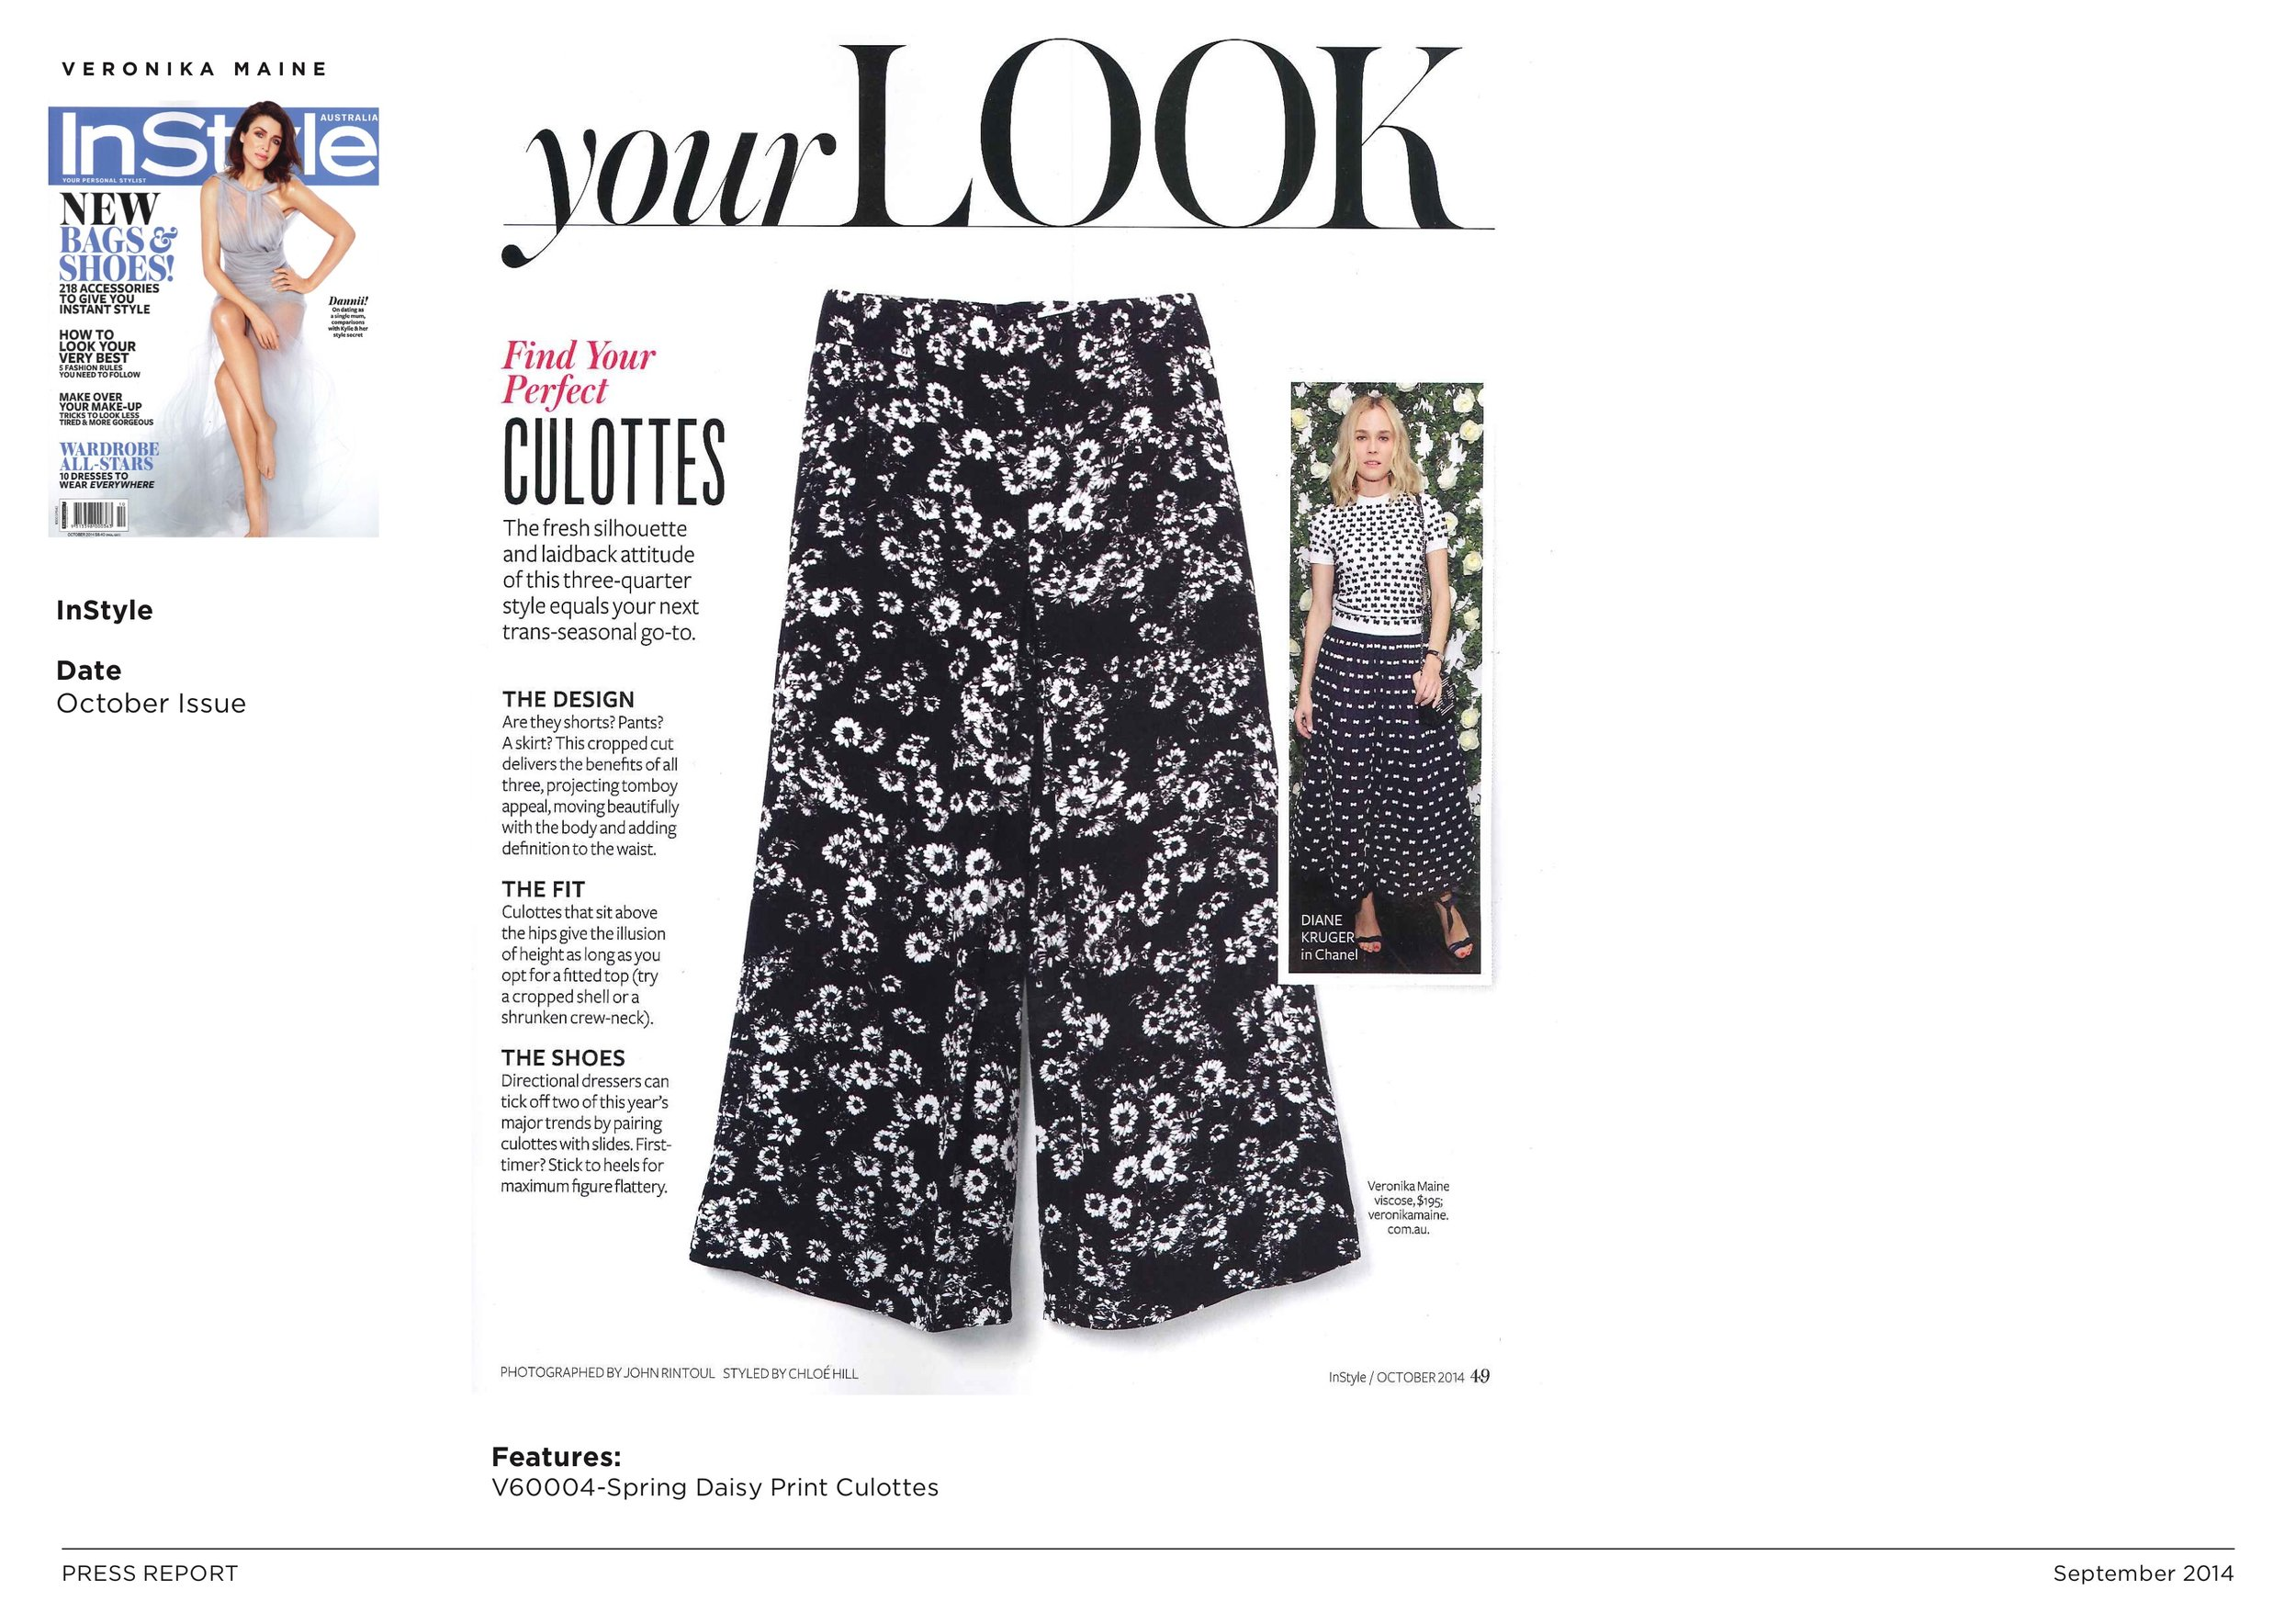 VM S14 - InStyle - October Issue.jpeg